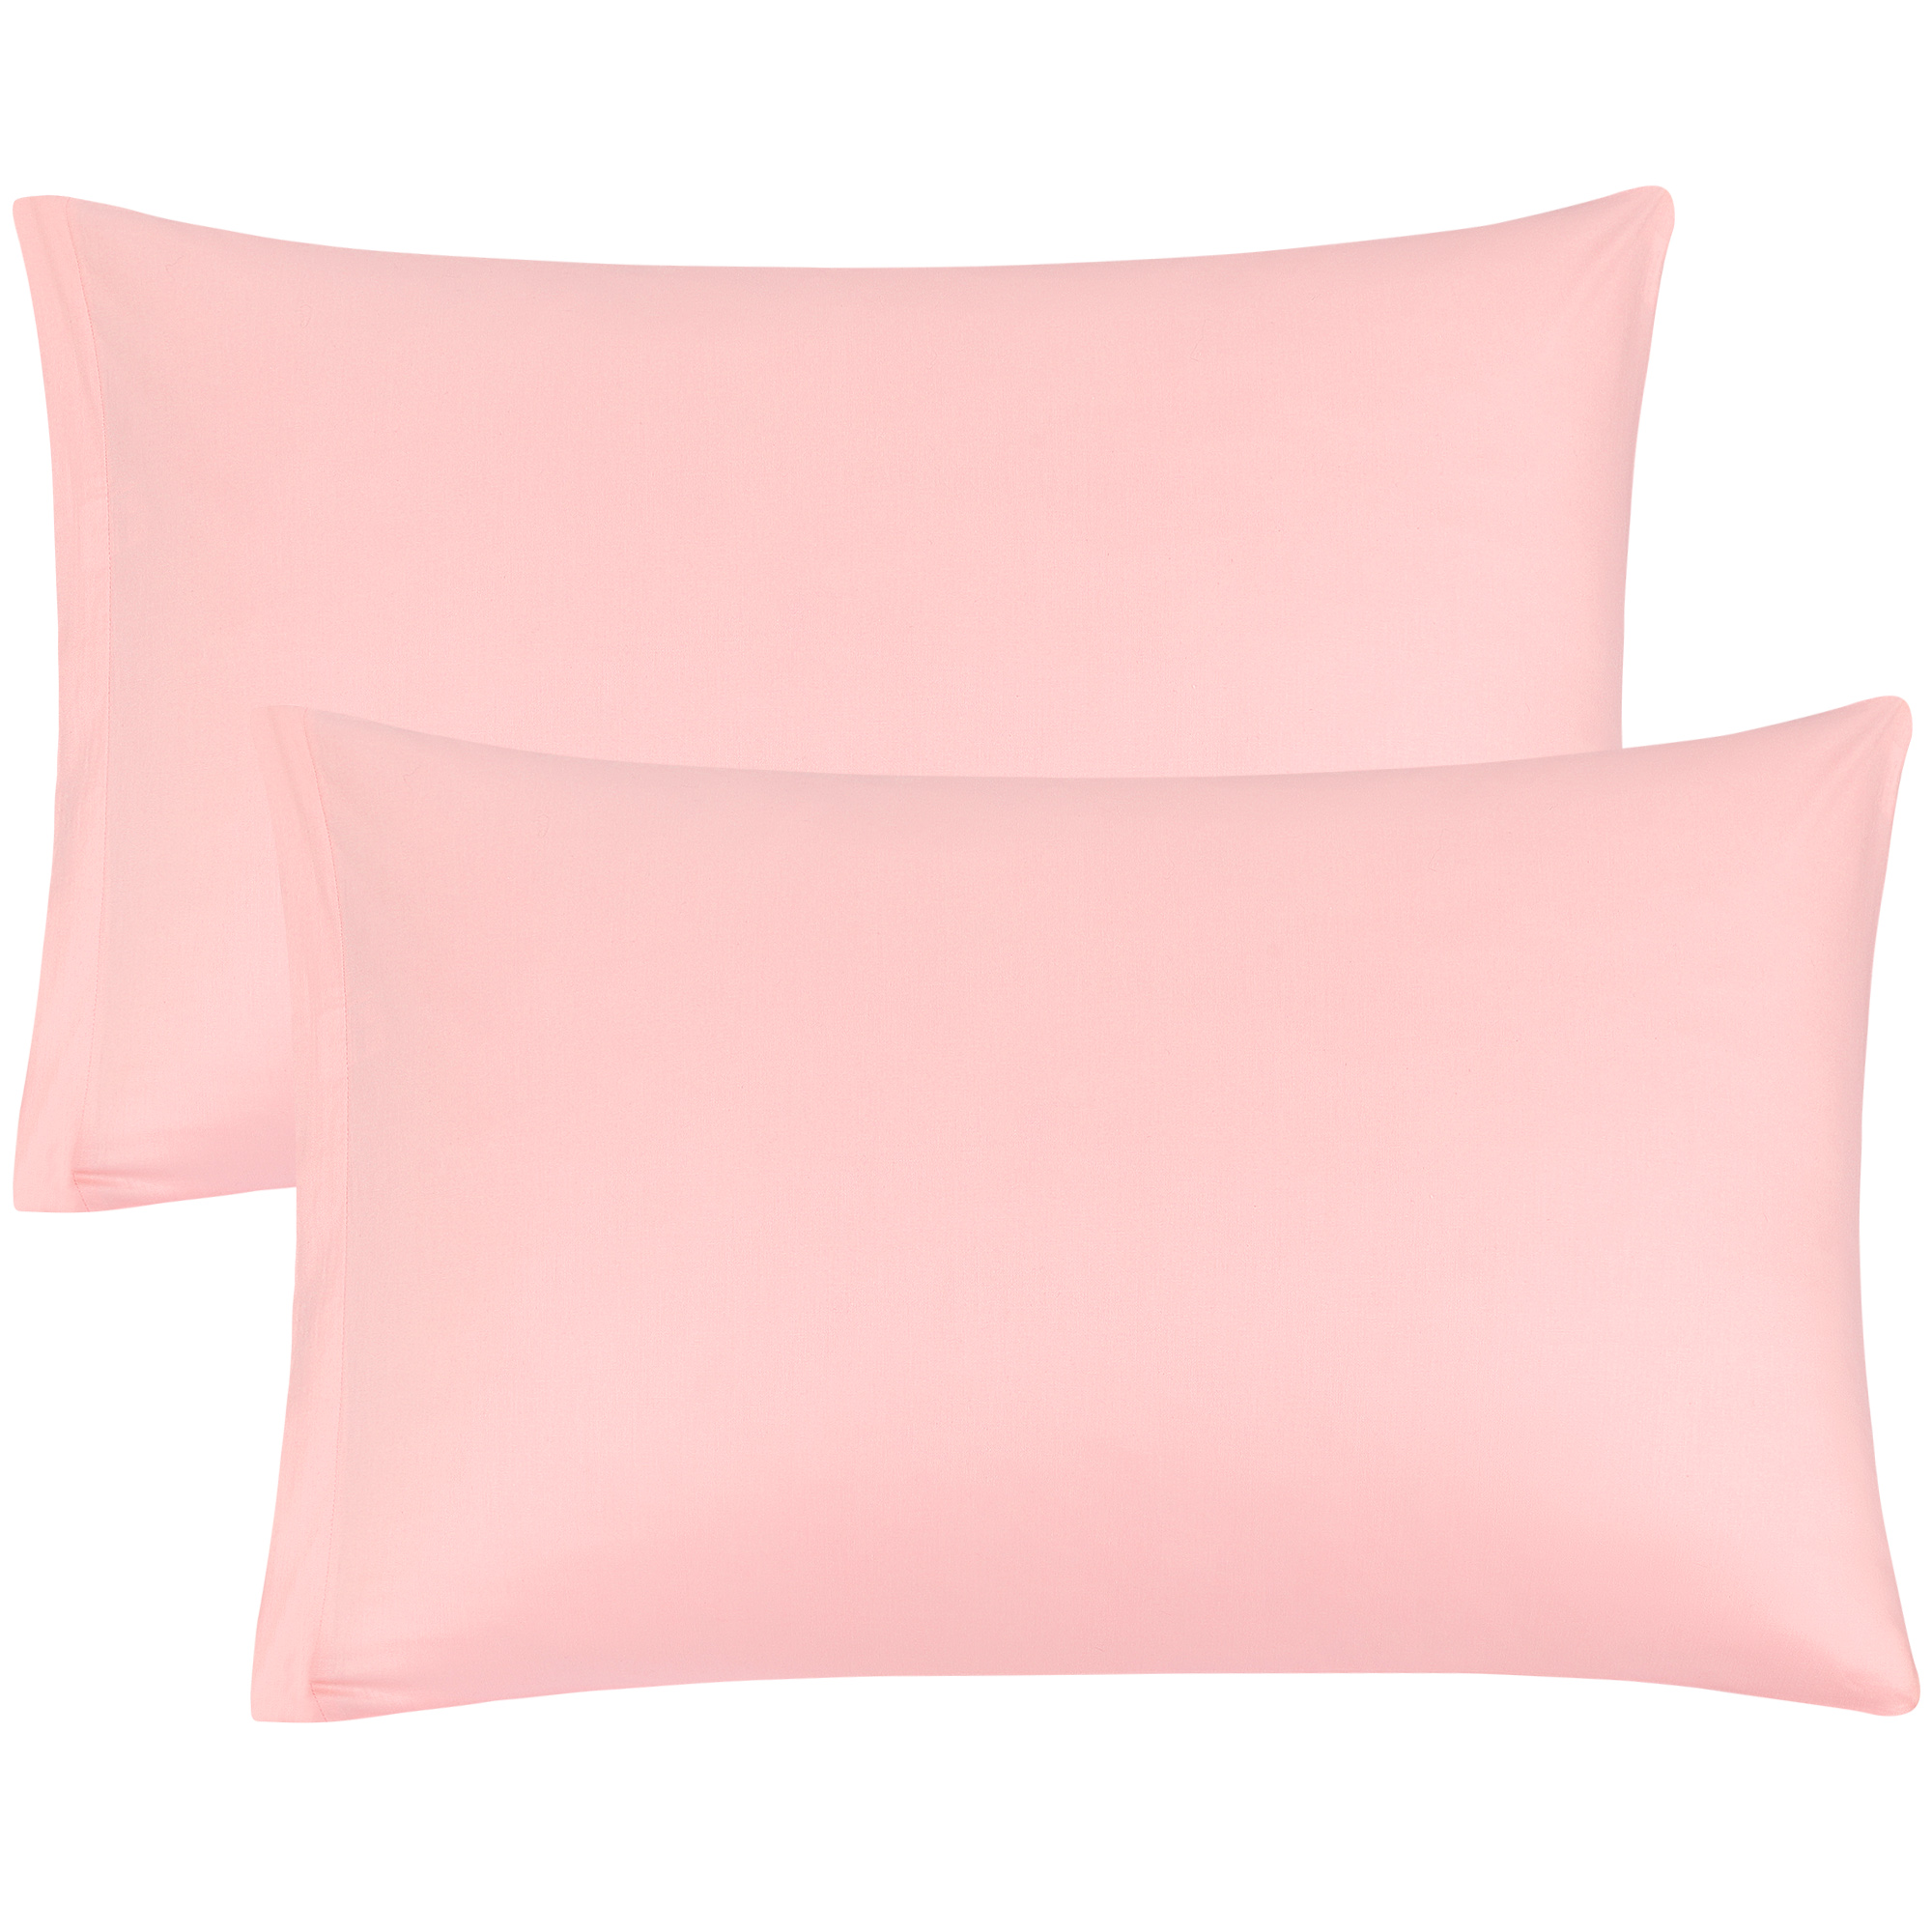 Zippered Pillowcases Covers Egyptian Cotton 2-Pack (20 x 30 Inch, Light Pink)